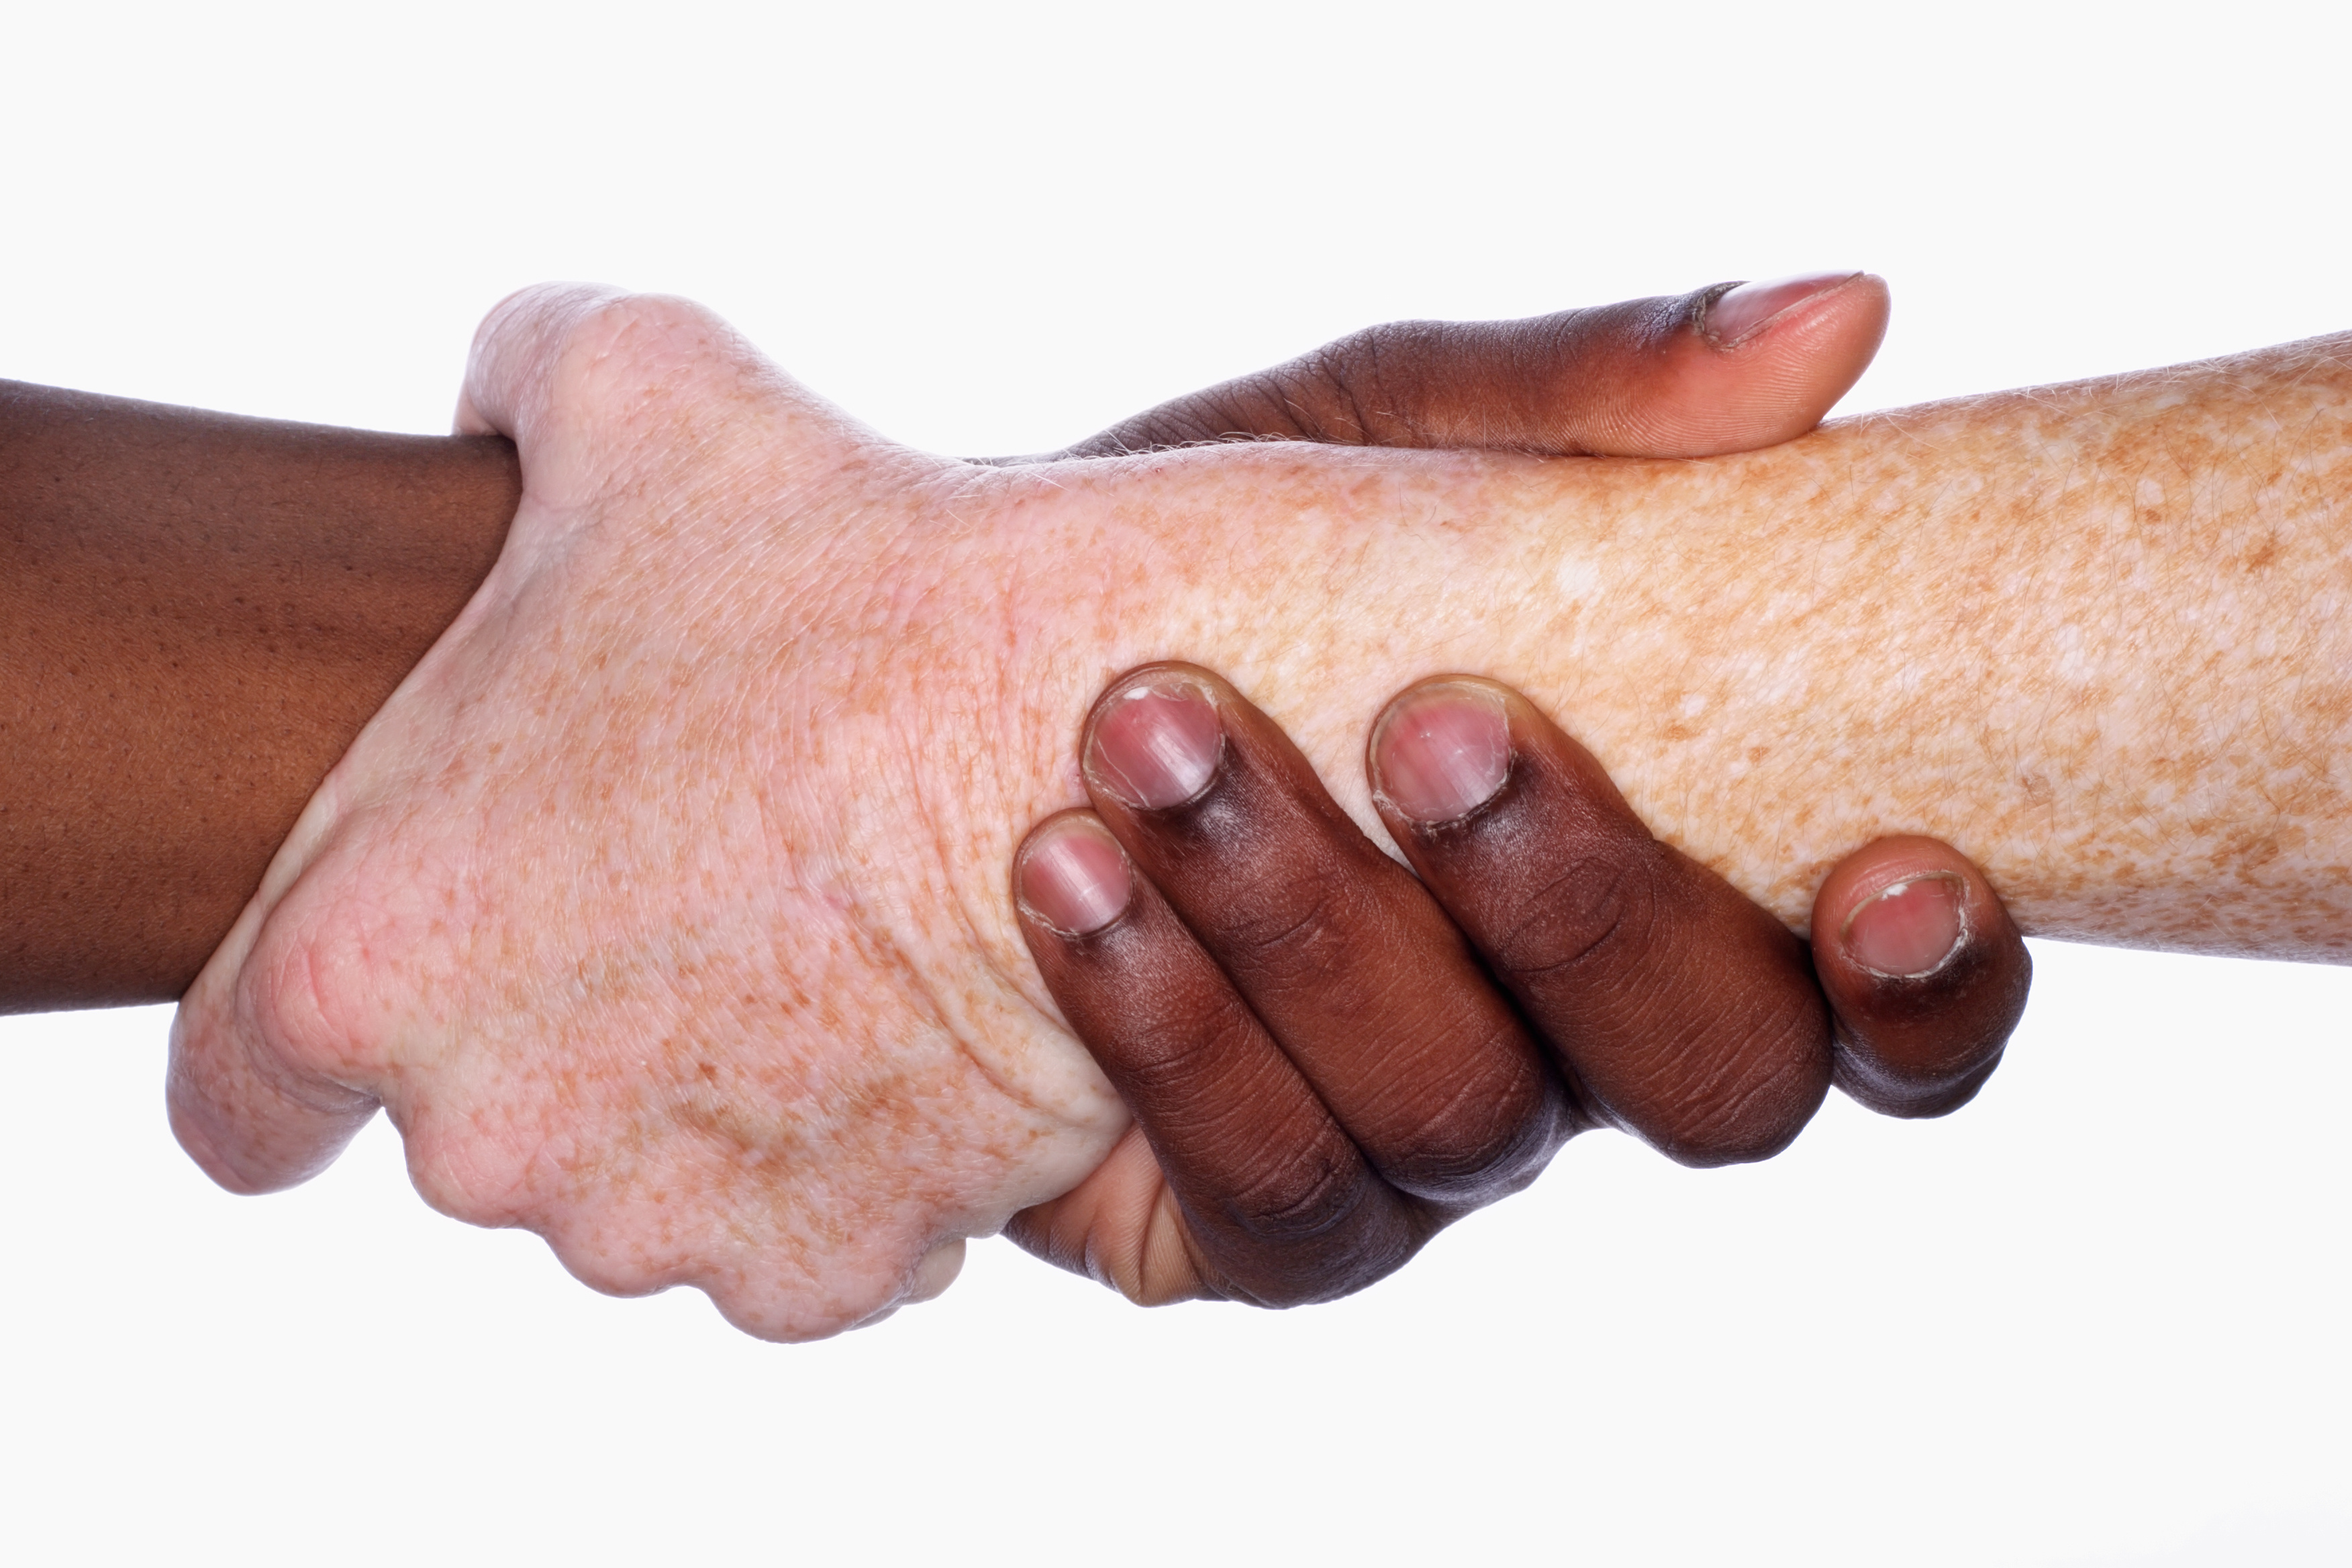 Two hands of different races grip each other in a handshake